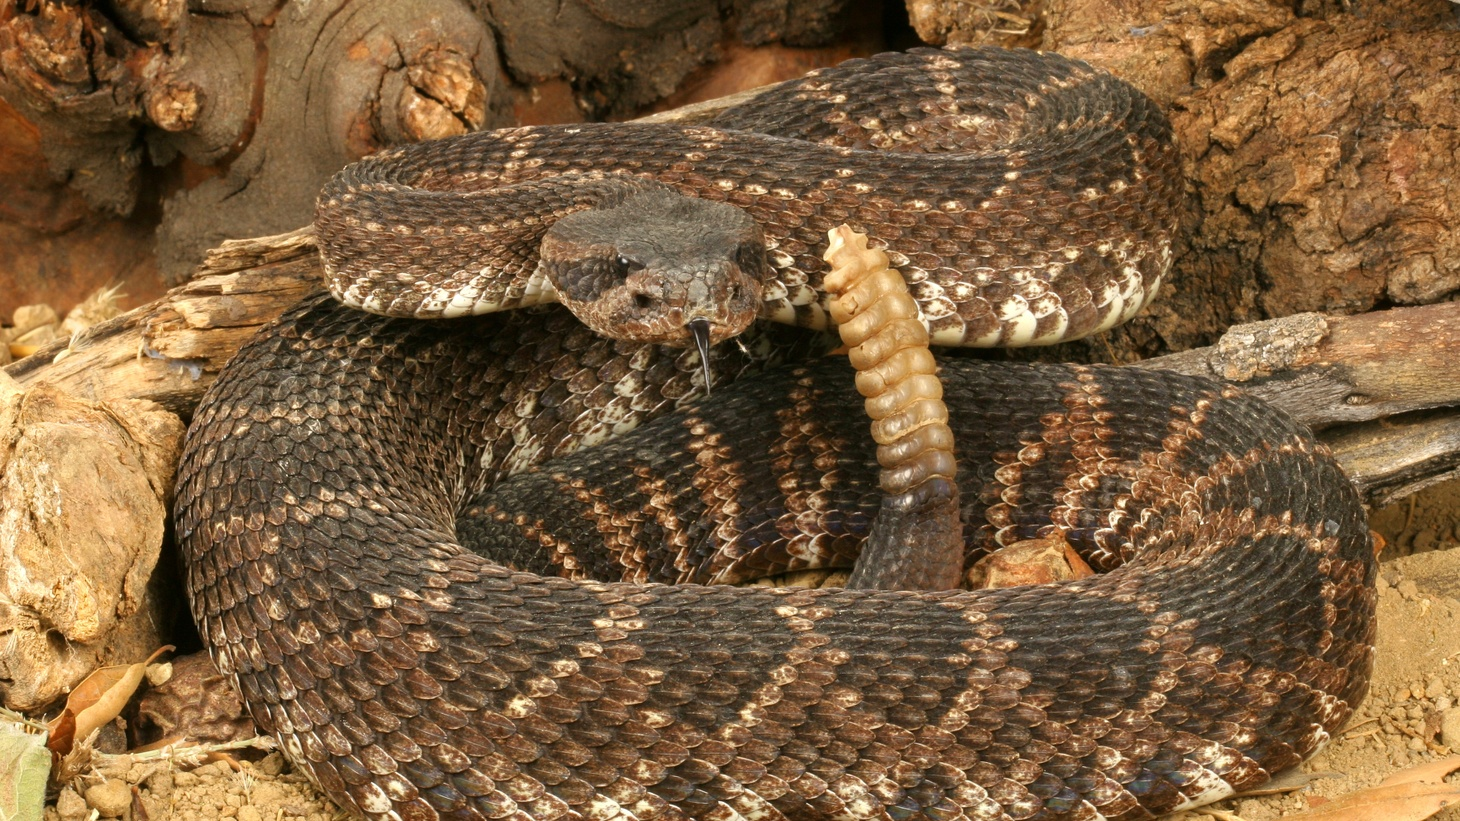 The venomous snake to especially avoid is the Southern Pacific rattlesnake, says Jules Sylvester, who runs Reptile Rentals.